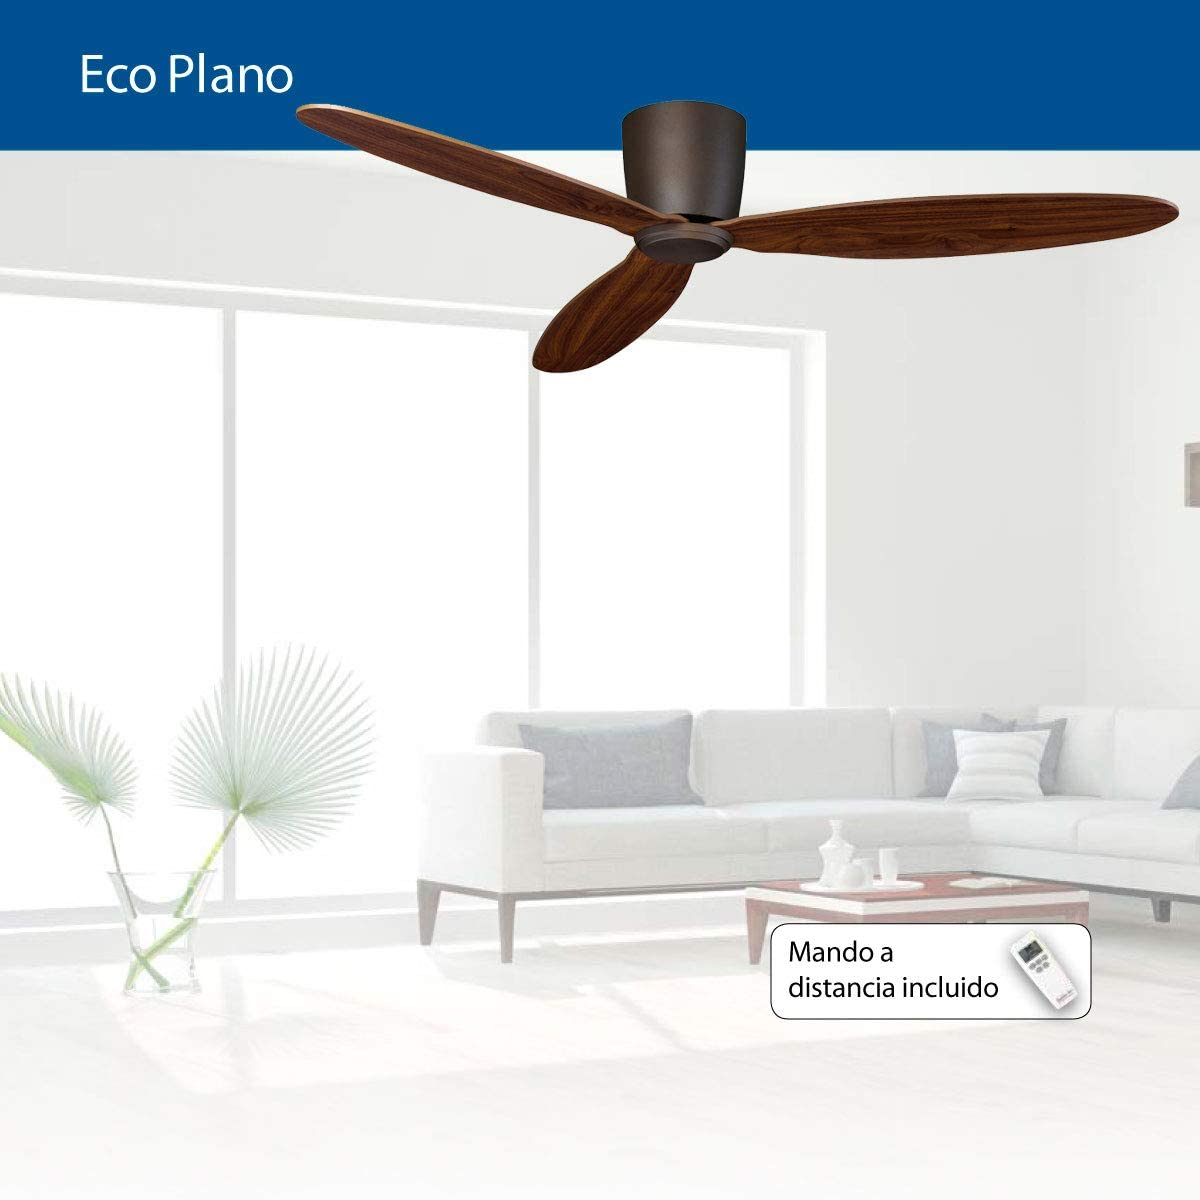 Ventilador de techo CasaFan 313262 ECO PLANO nogal/marron: Amazon ...